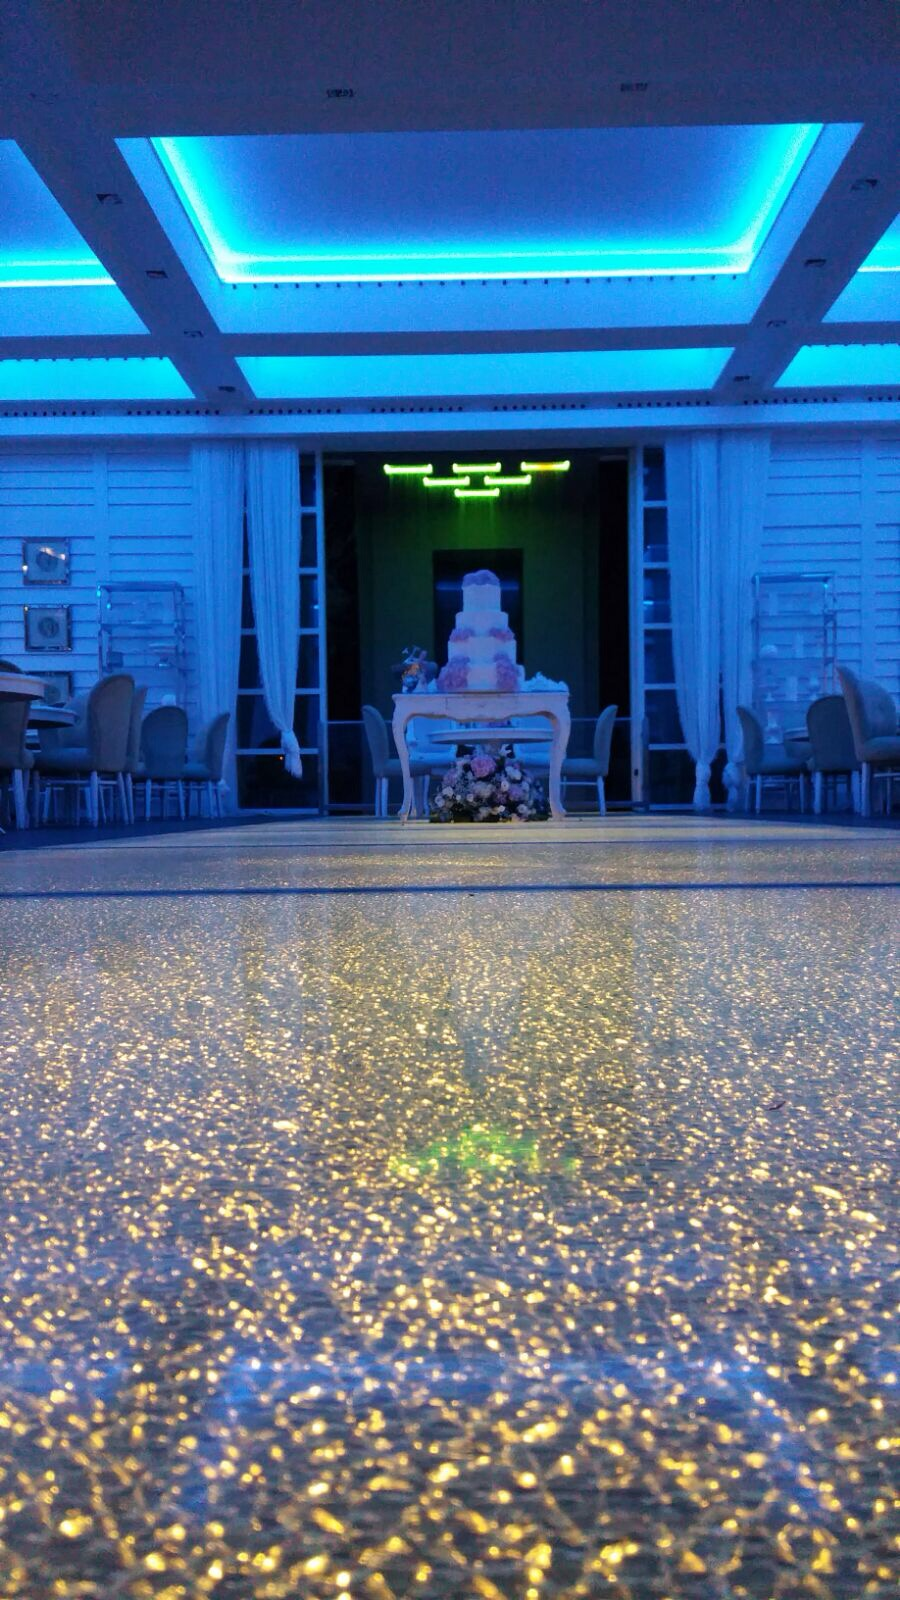 http://www.weddingamalfi.com/wp-content/uploads/Domenico-and-Maria-wedding-cake-and-sweets-tables.jpg